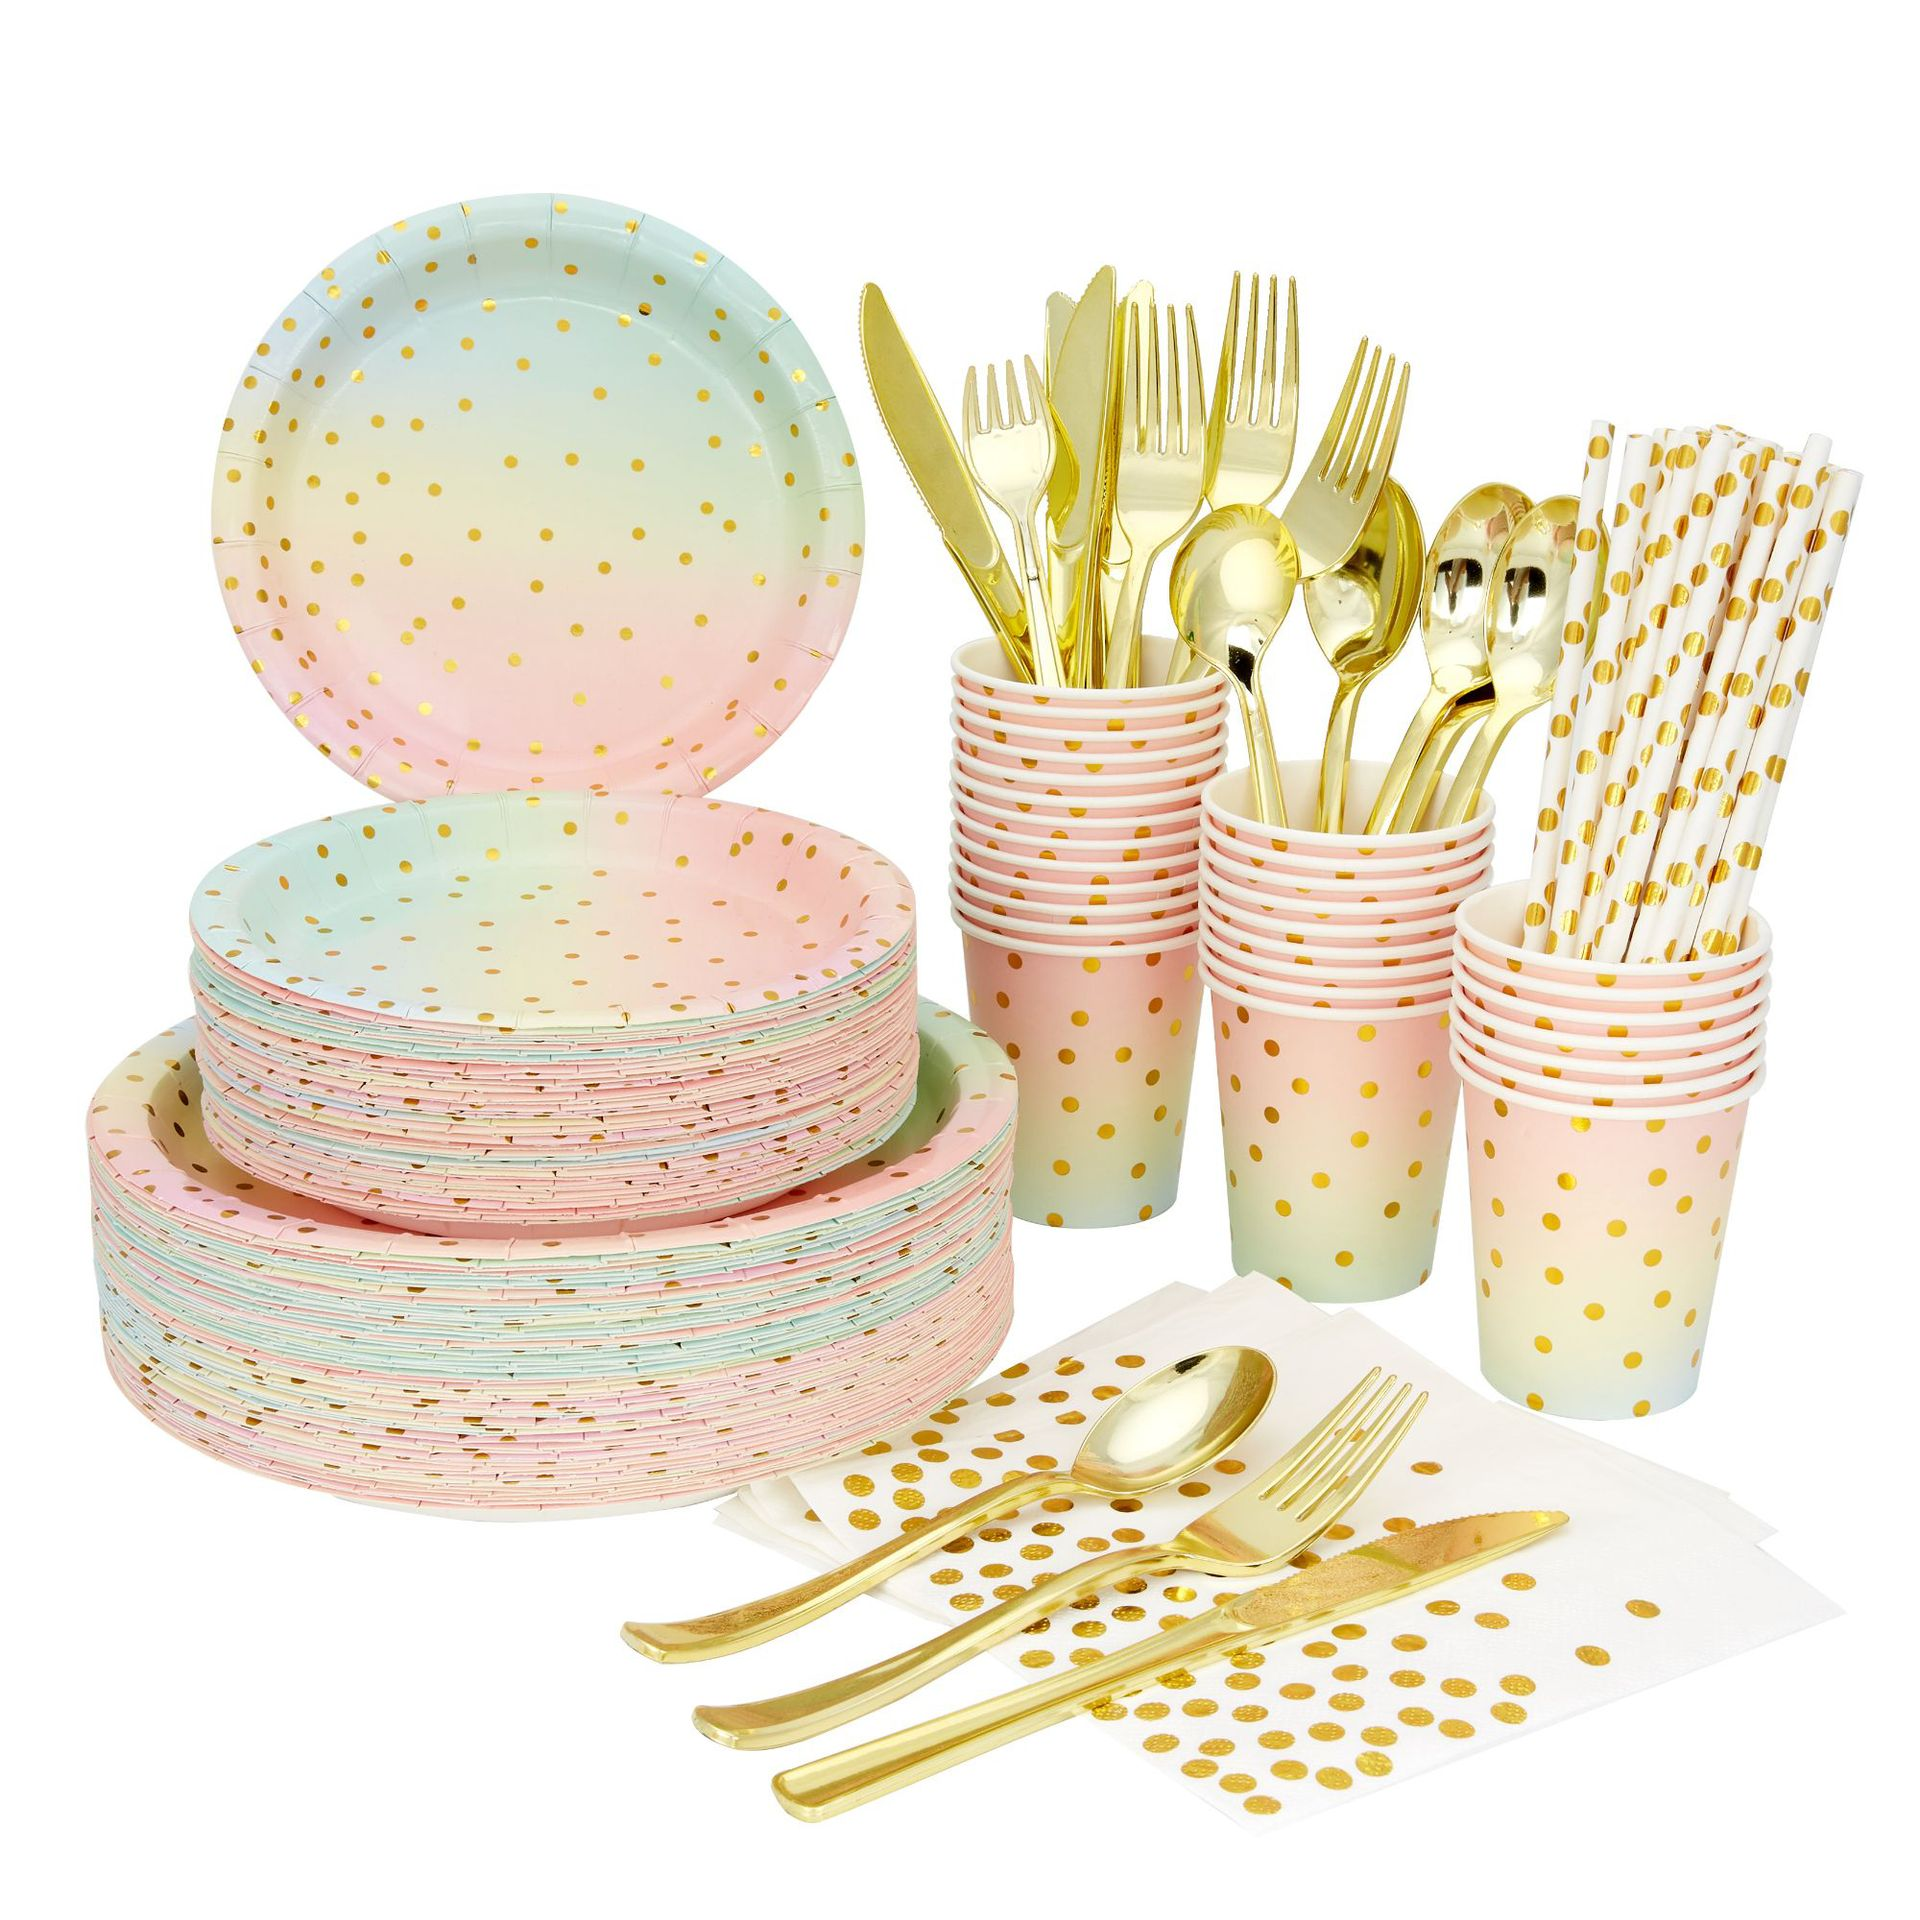 70PCS New Birthday Rose Gold Disposable Party Tableware Set Paper Disposable Cups Plate Straws Napkin Kids Birthday Gifts Hot